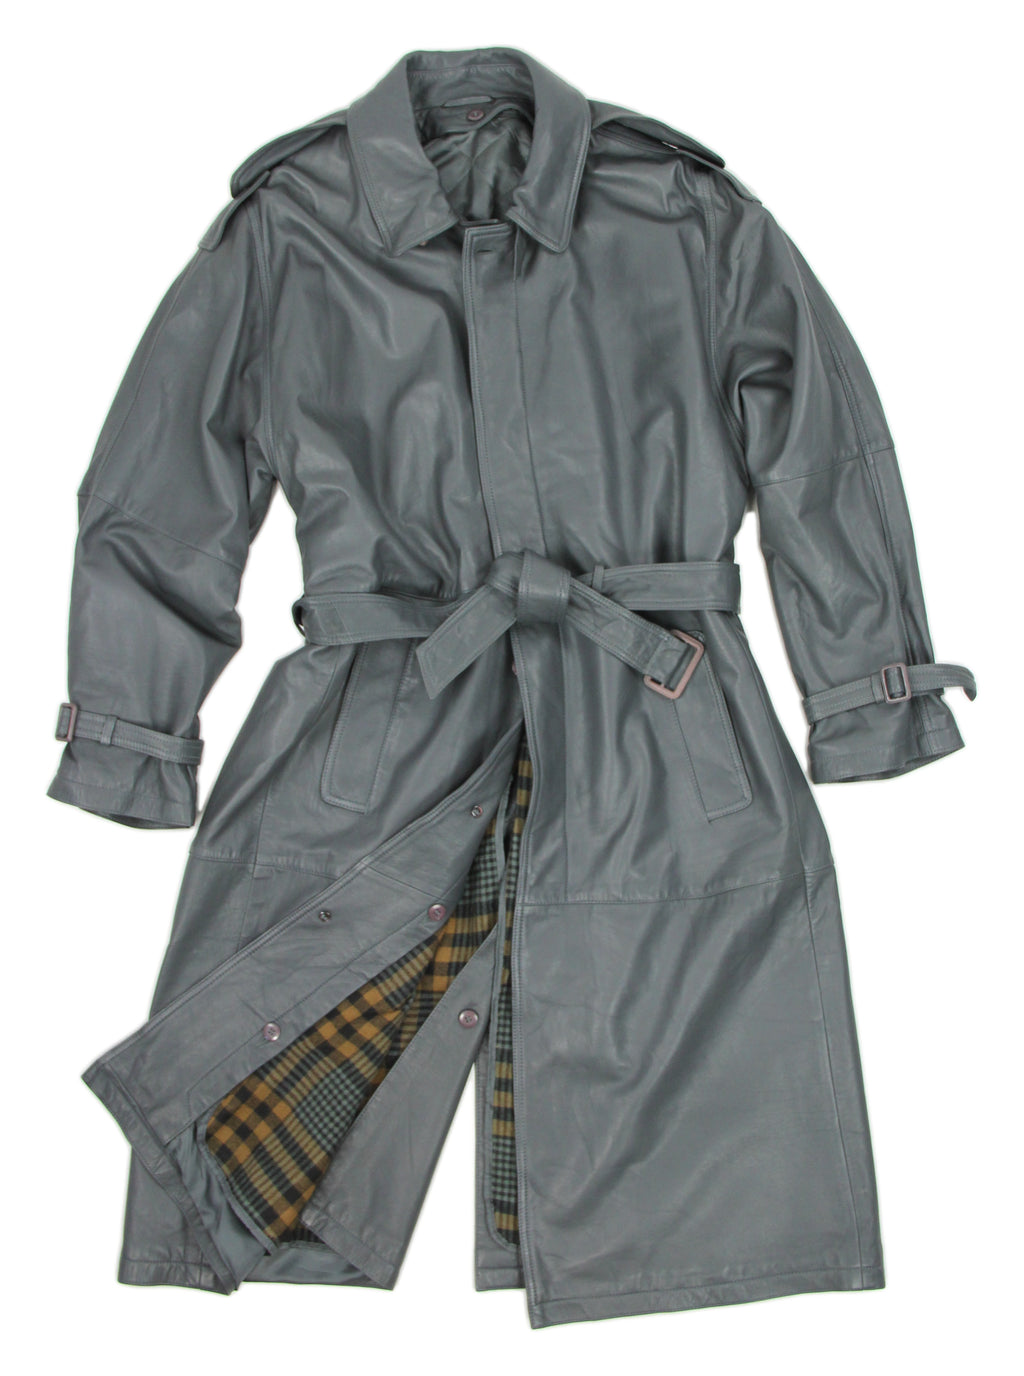 Supple Leather Vintage Gray Trench Coat With Removable Lining, XL, USA 42R - second_first